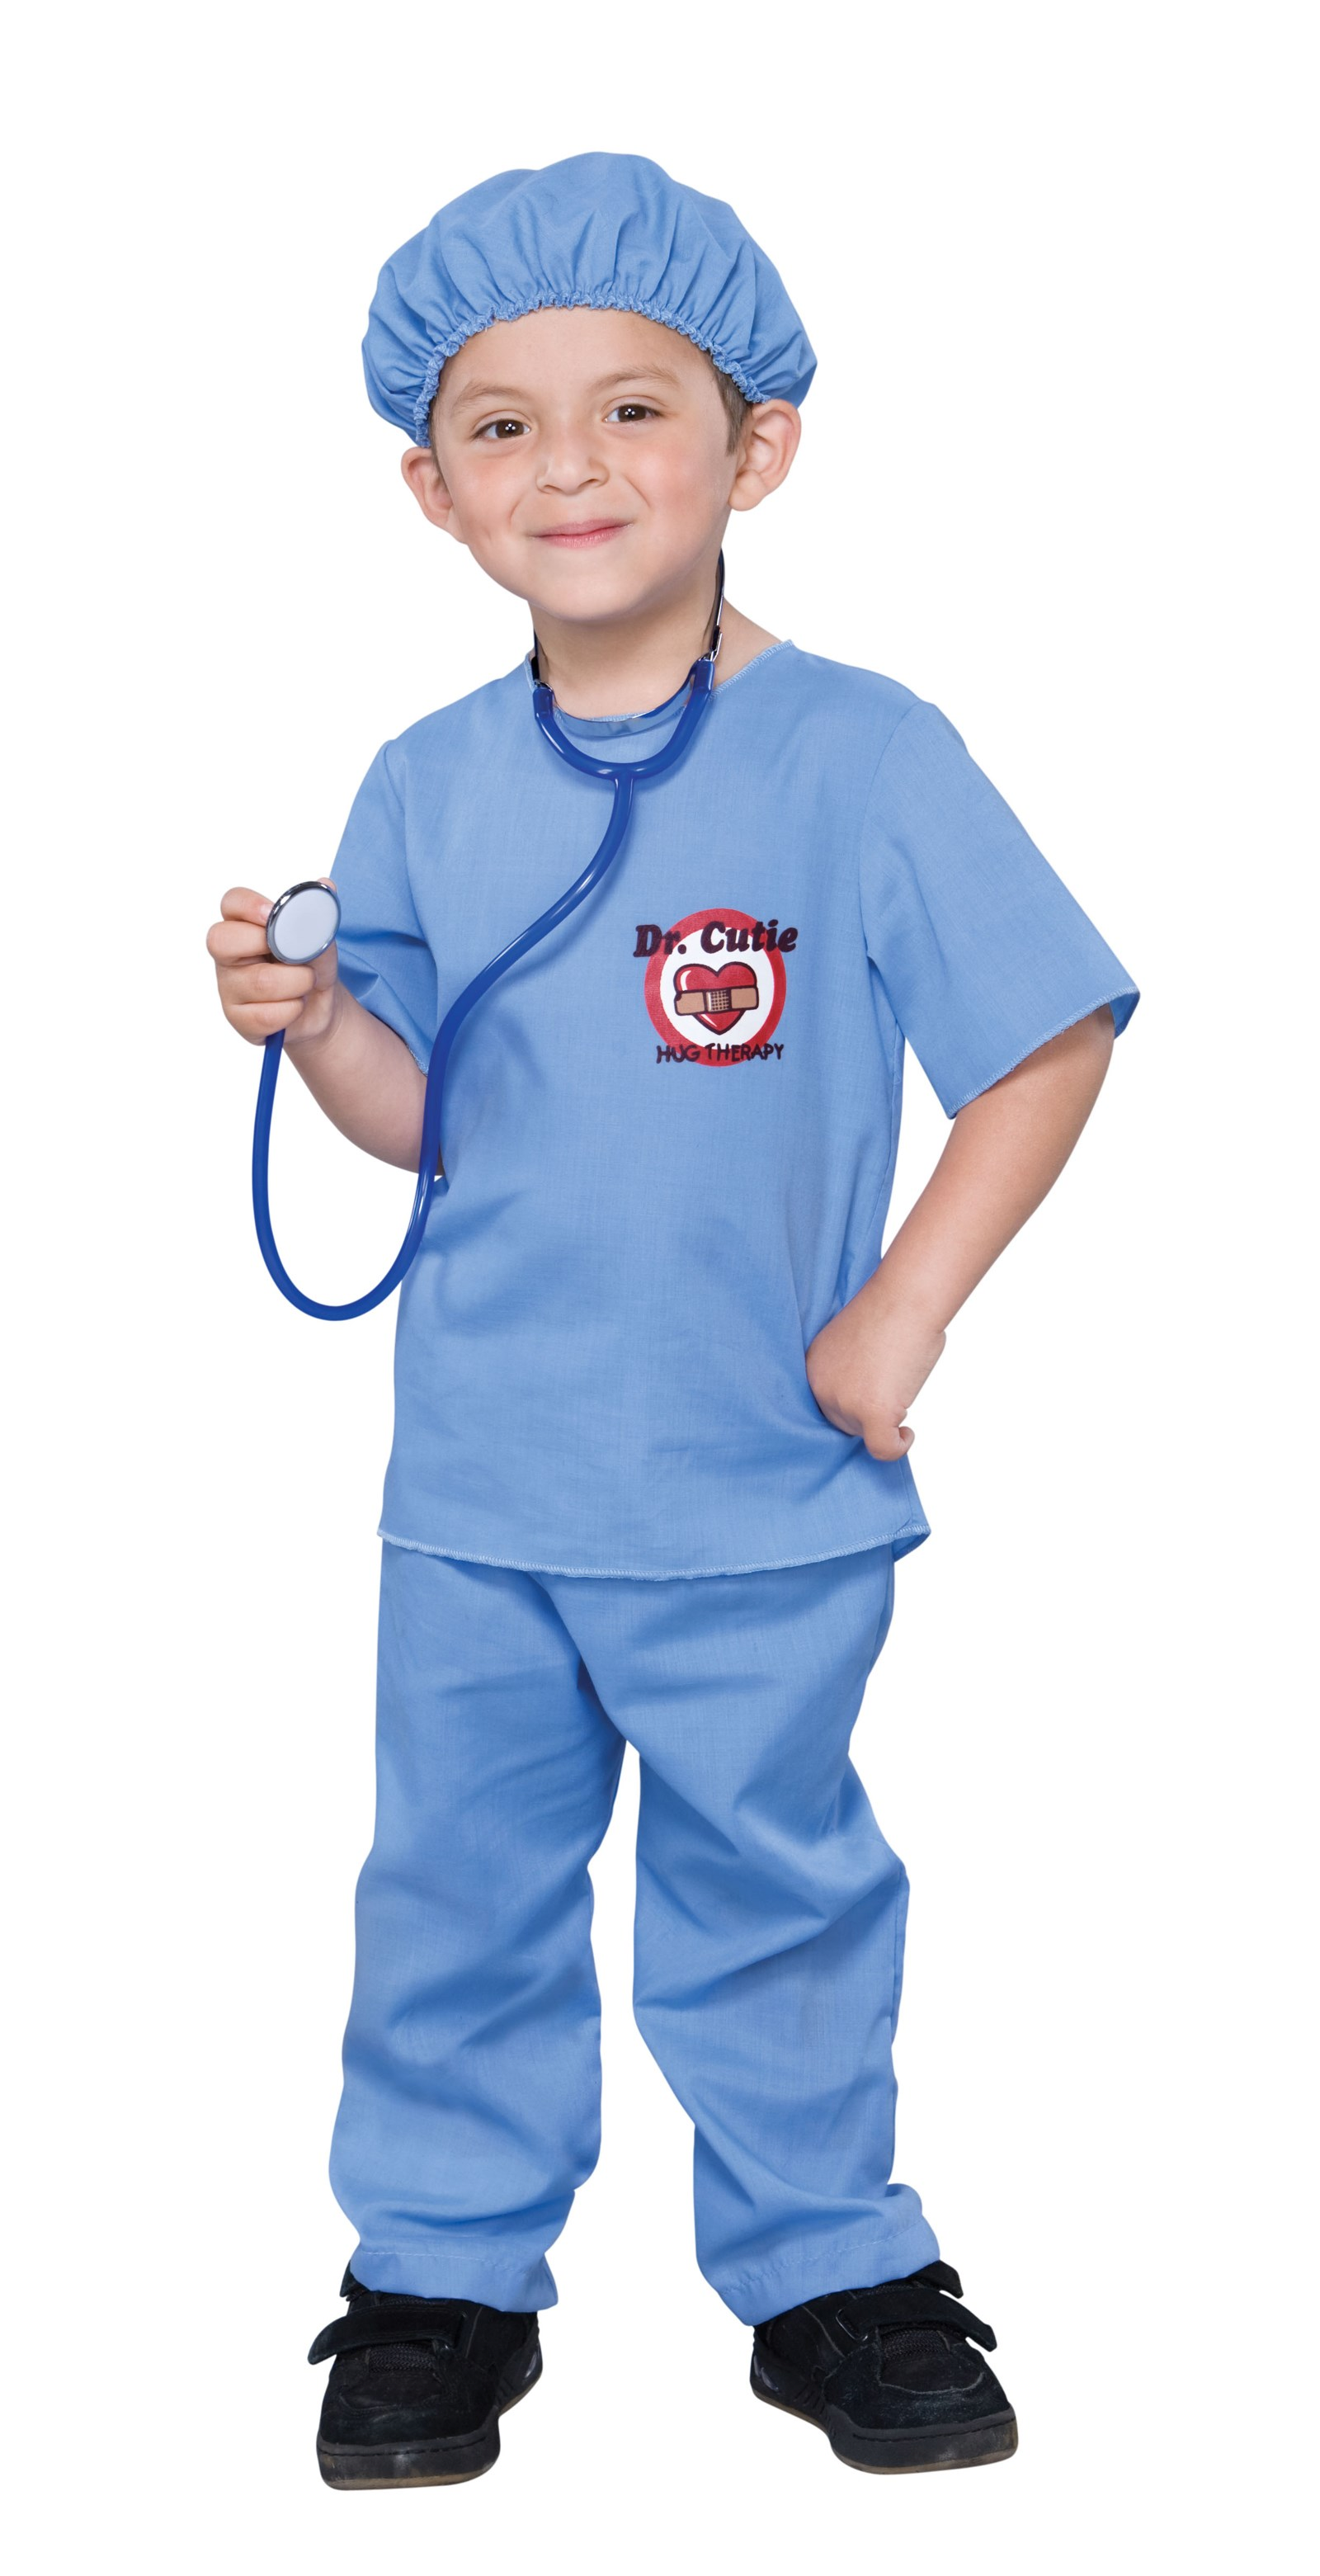 Doctor Cutie Toddler Costume Toddler (2-4T)